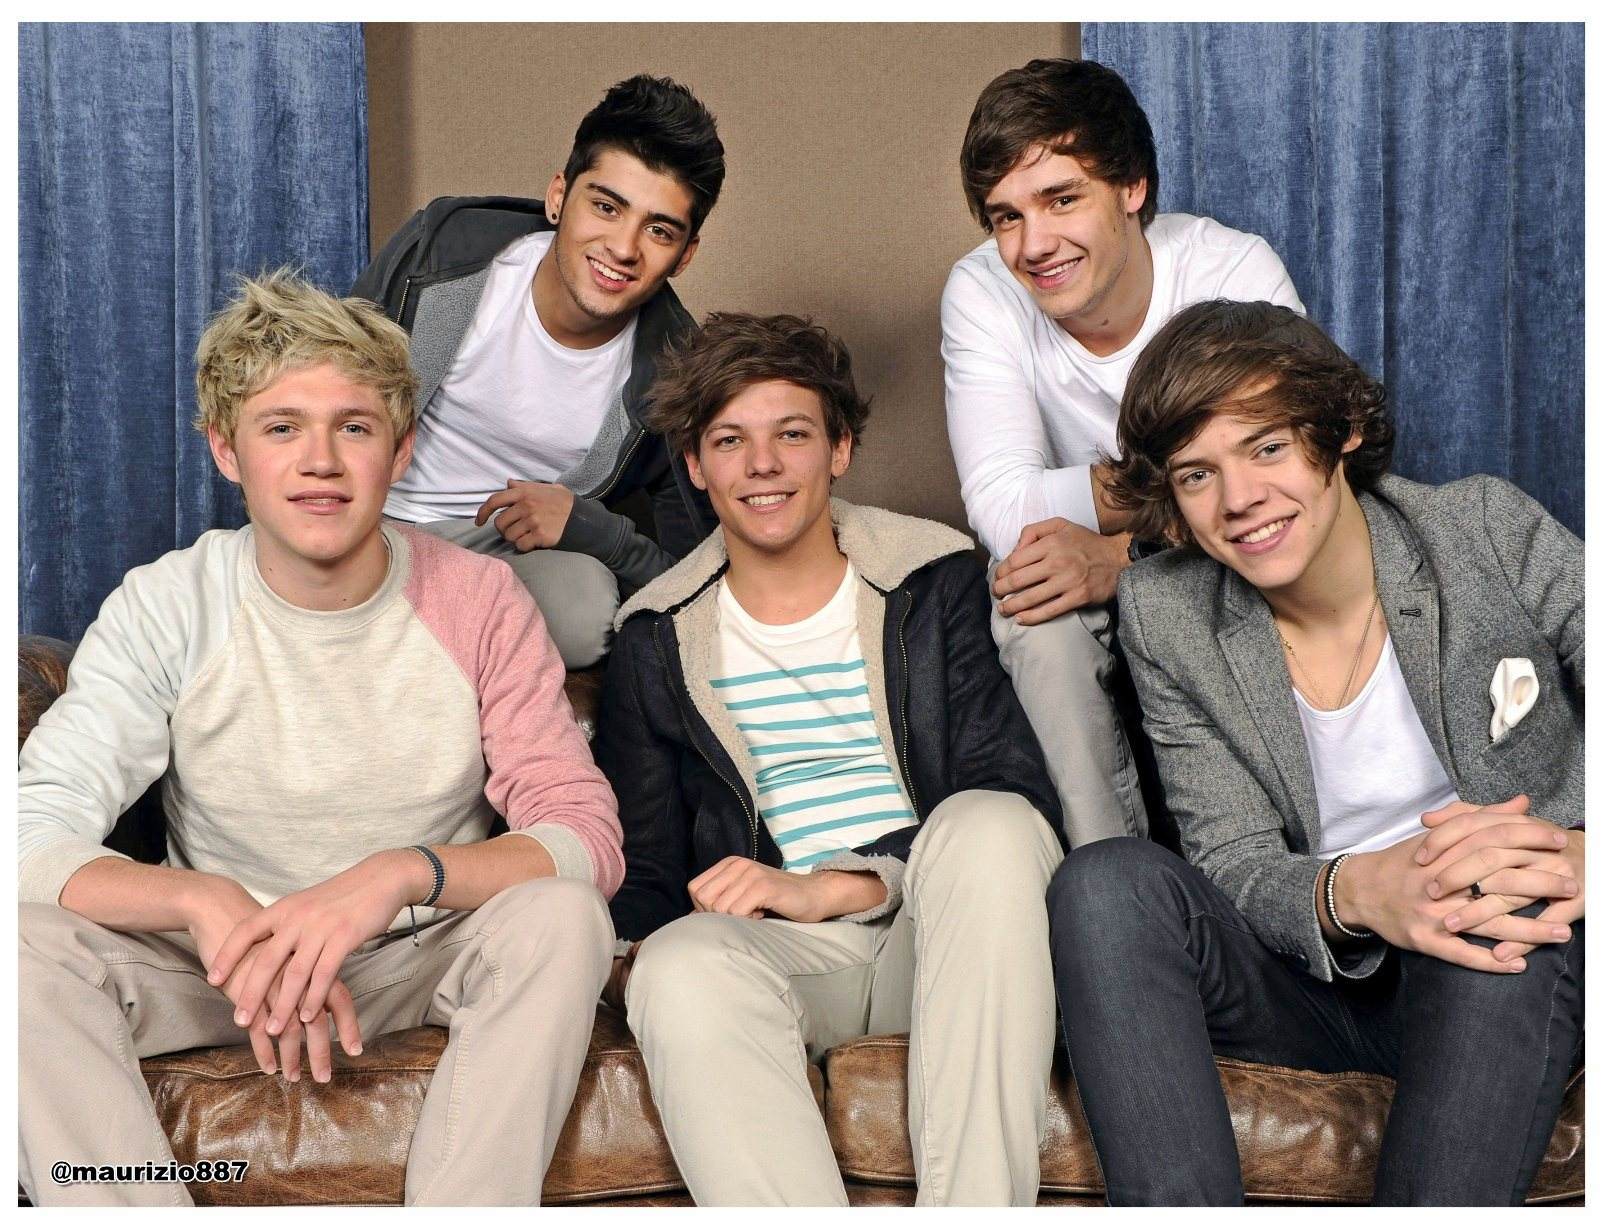 Boys one direction images6fanpop voltagebd Choice Image